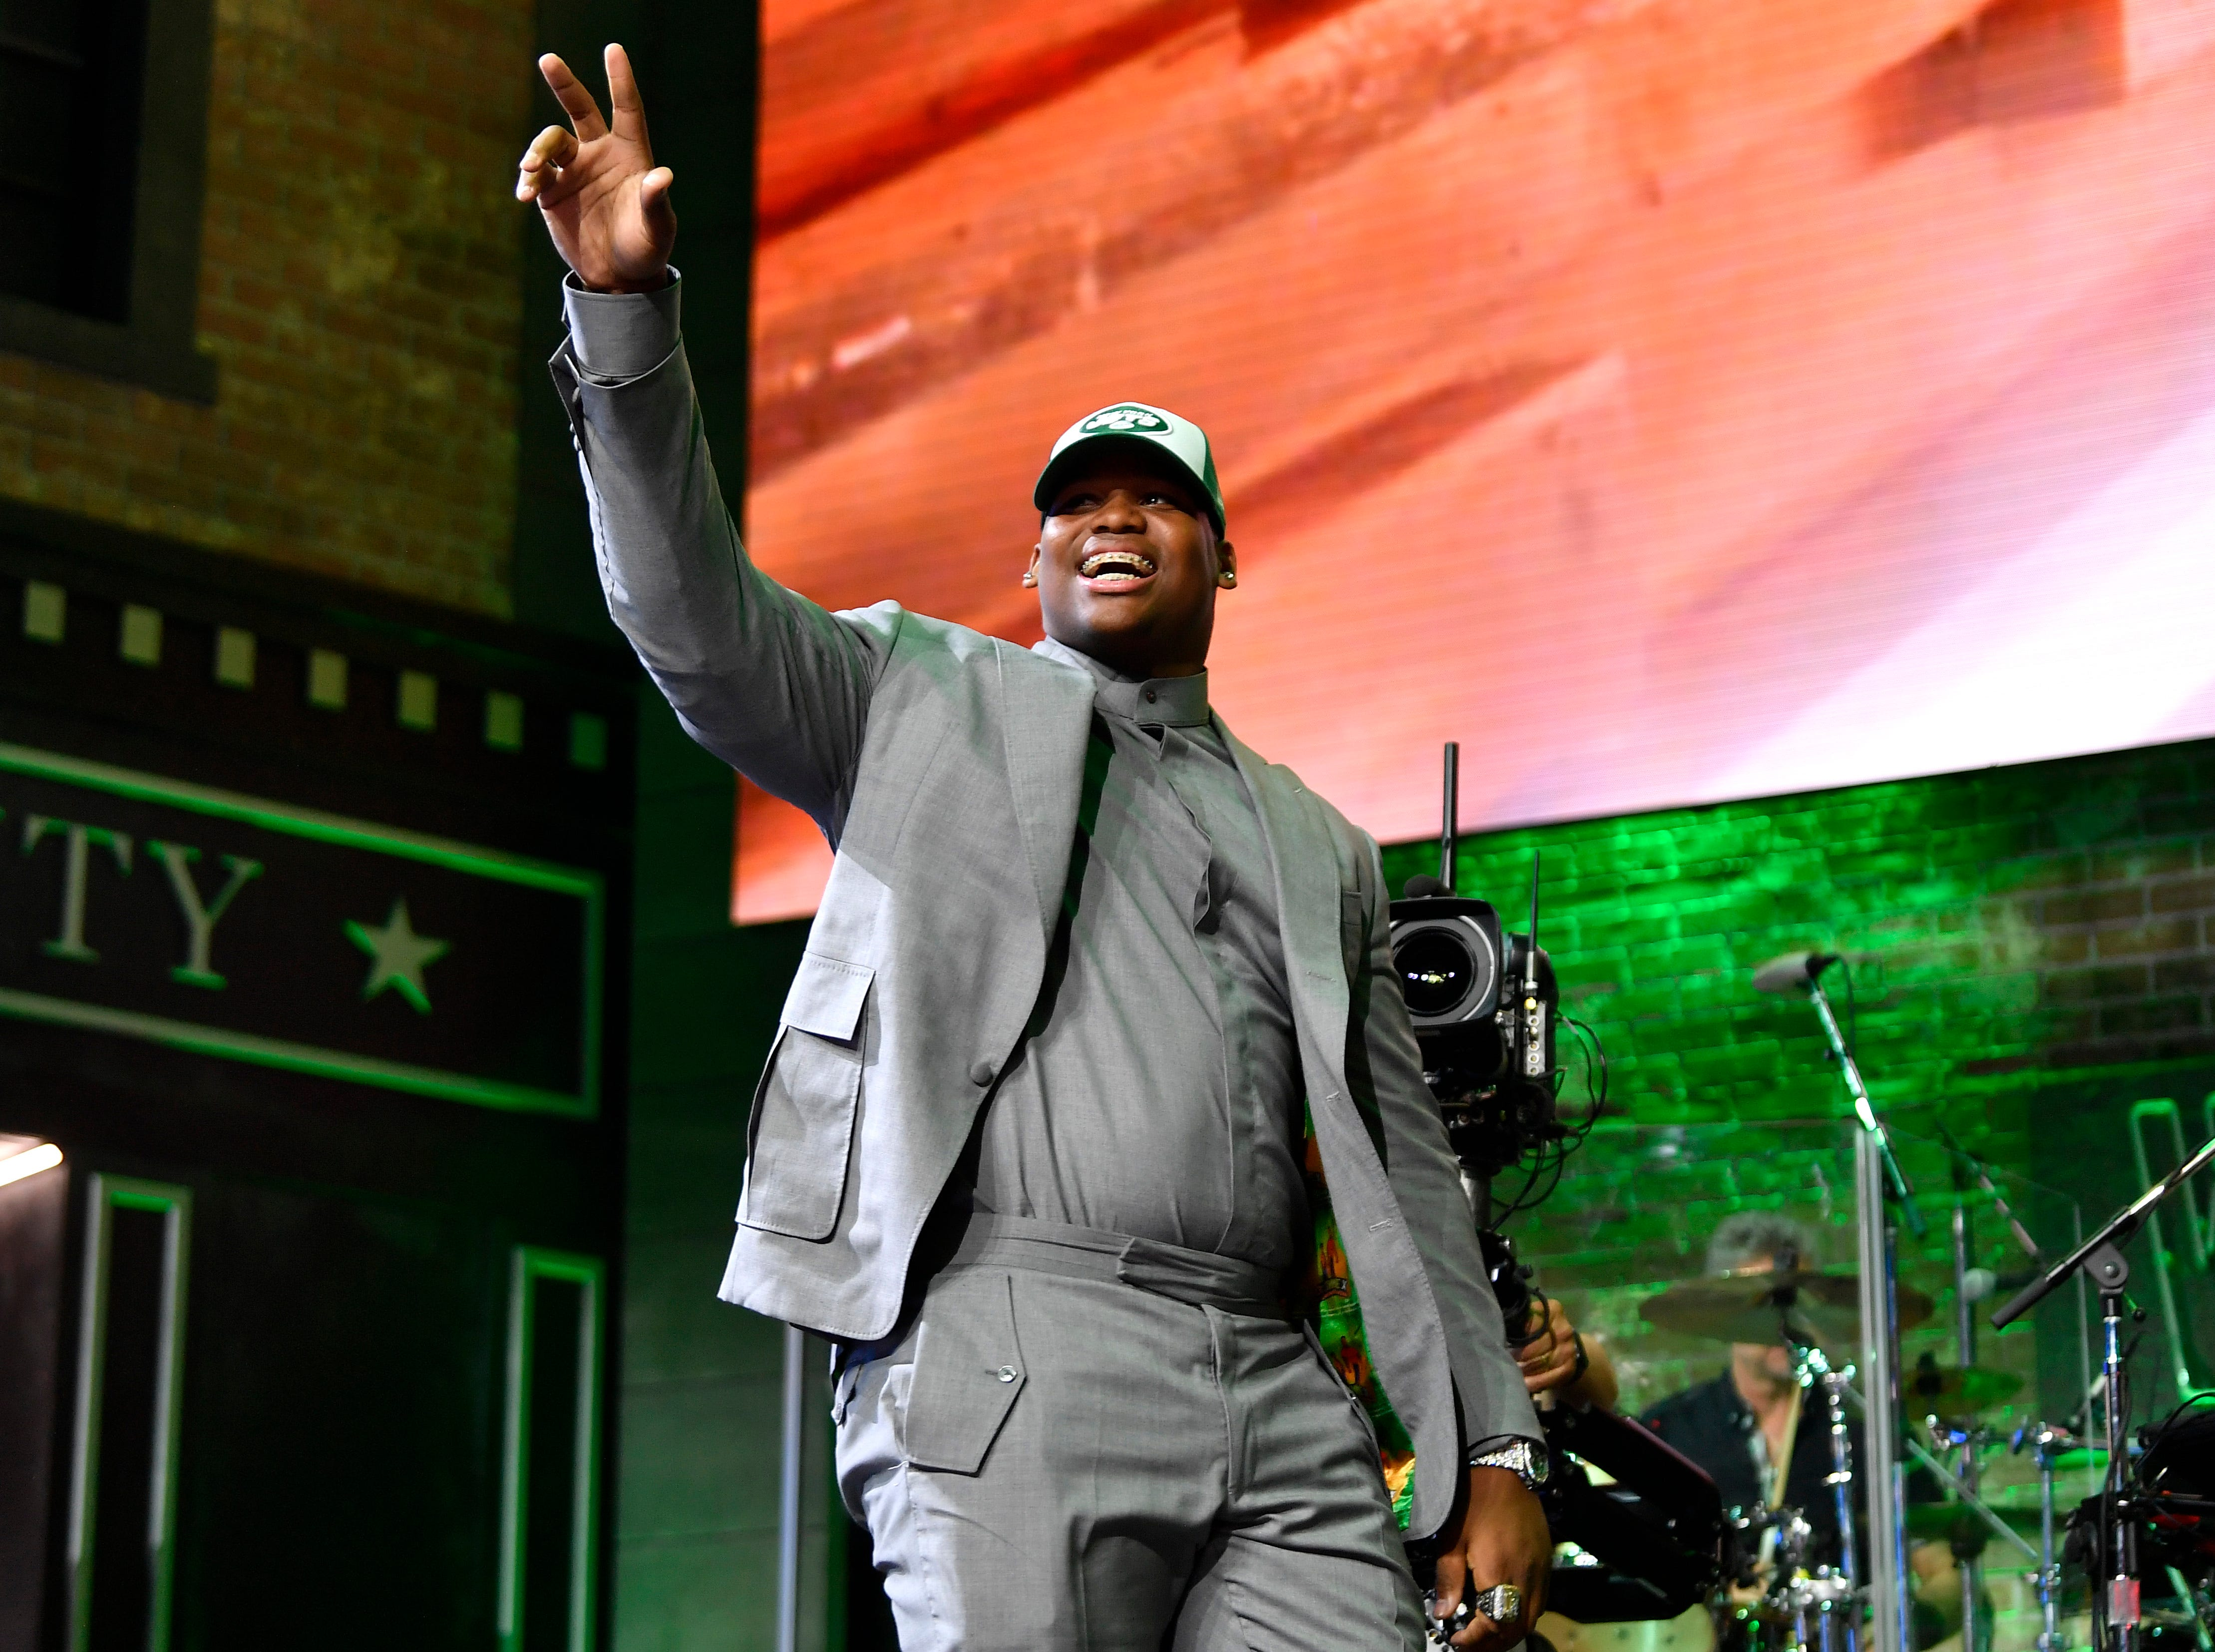 Quinnen Williams waves to the crowd after being selected by the New York Jets during the first round of the NFL Draft Thursday, April 25, 2019, in Nashville, Tenn.